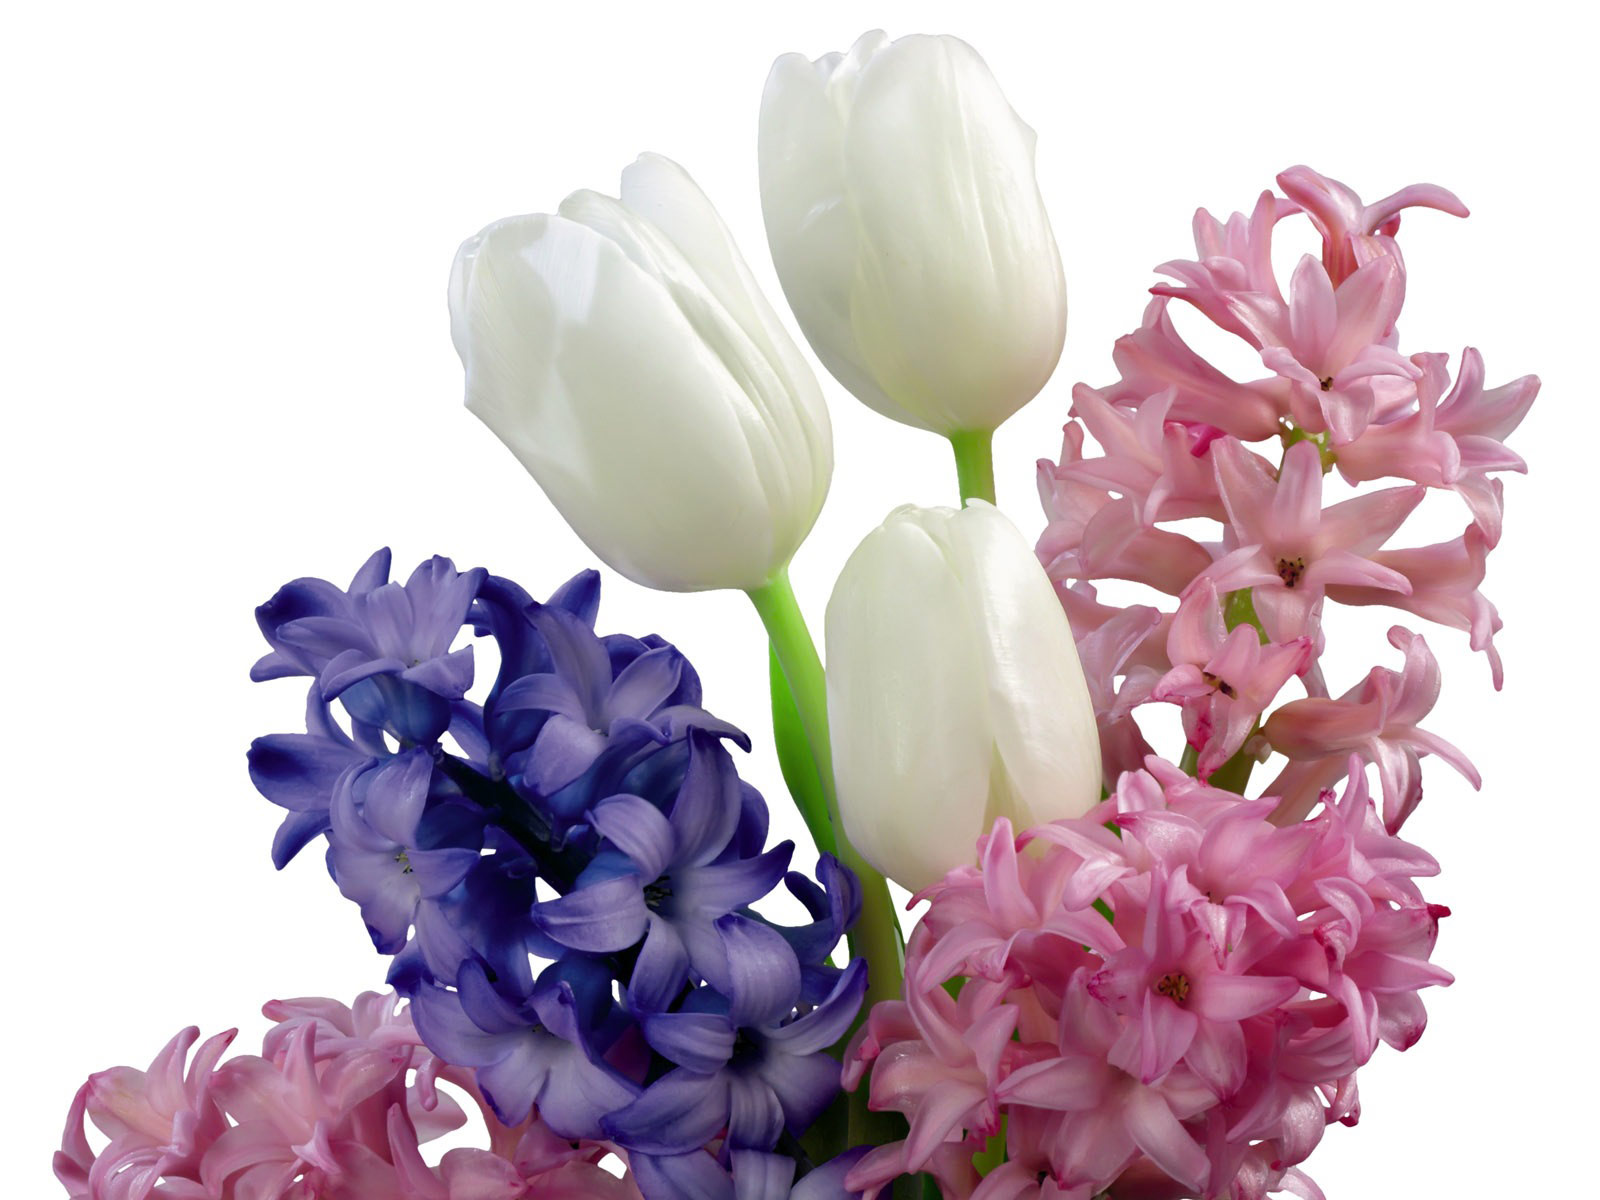 Desktop Wallpaper · Gallery · Nature Tulips and Hyacinth bouquet